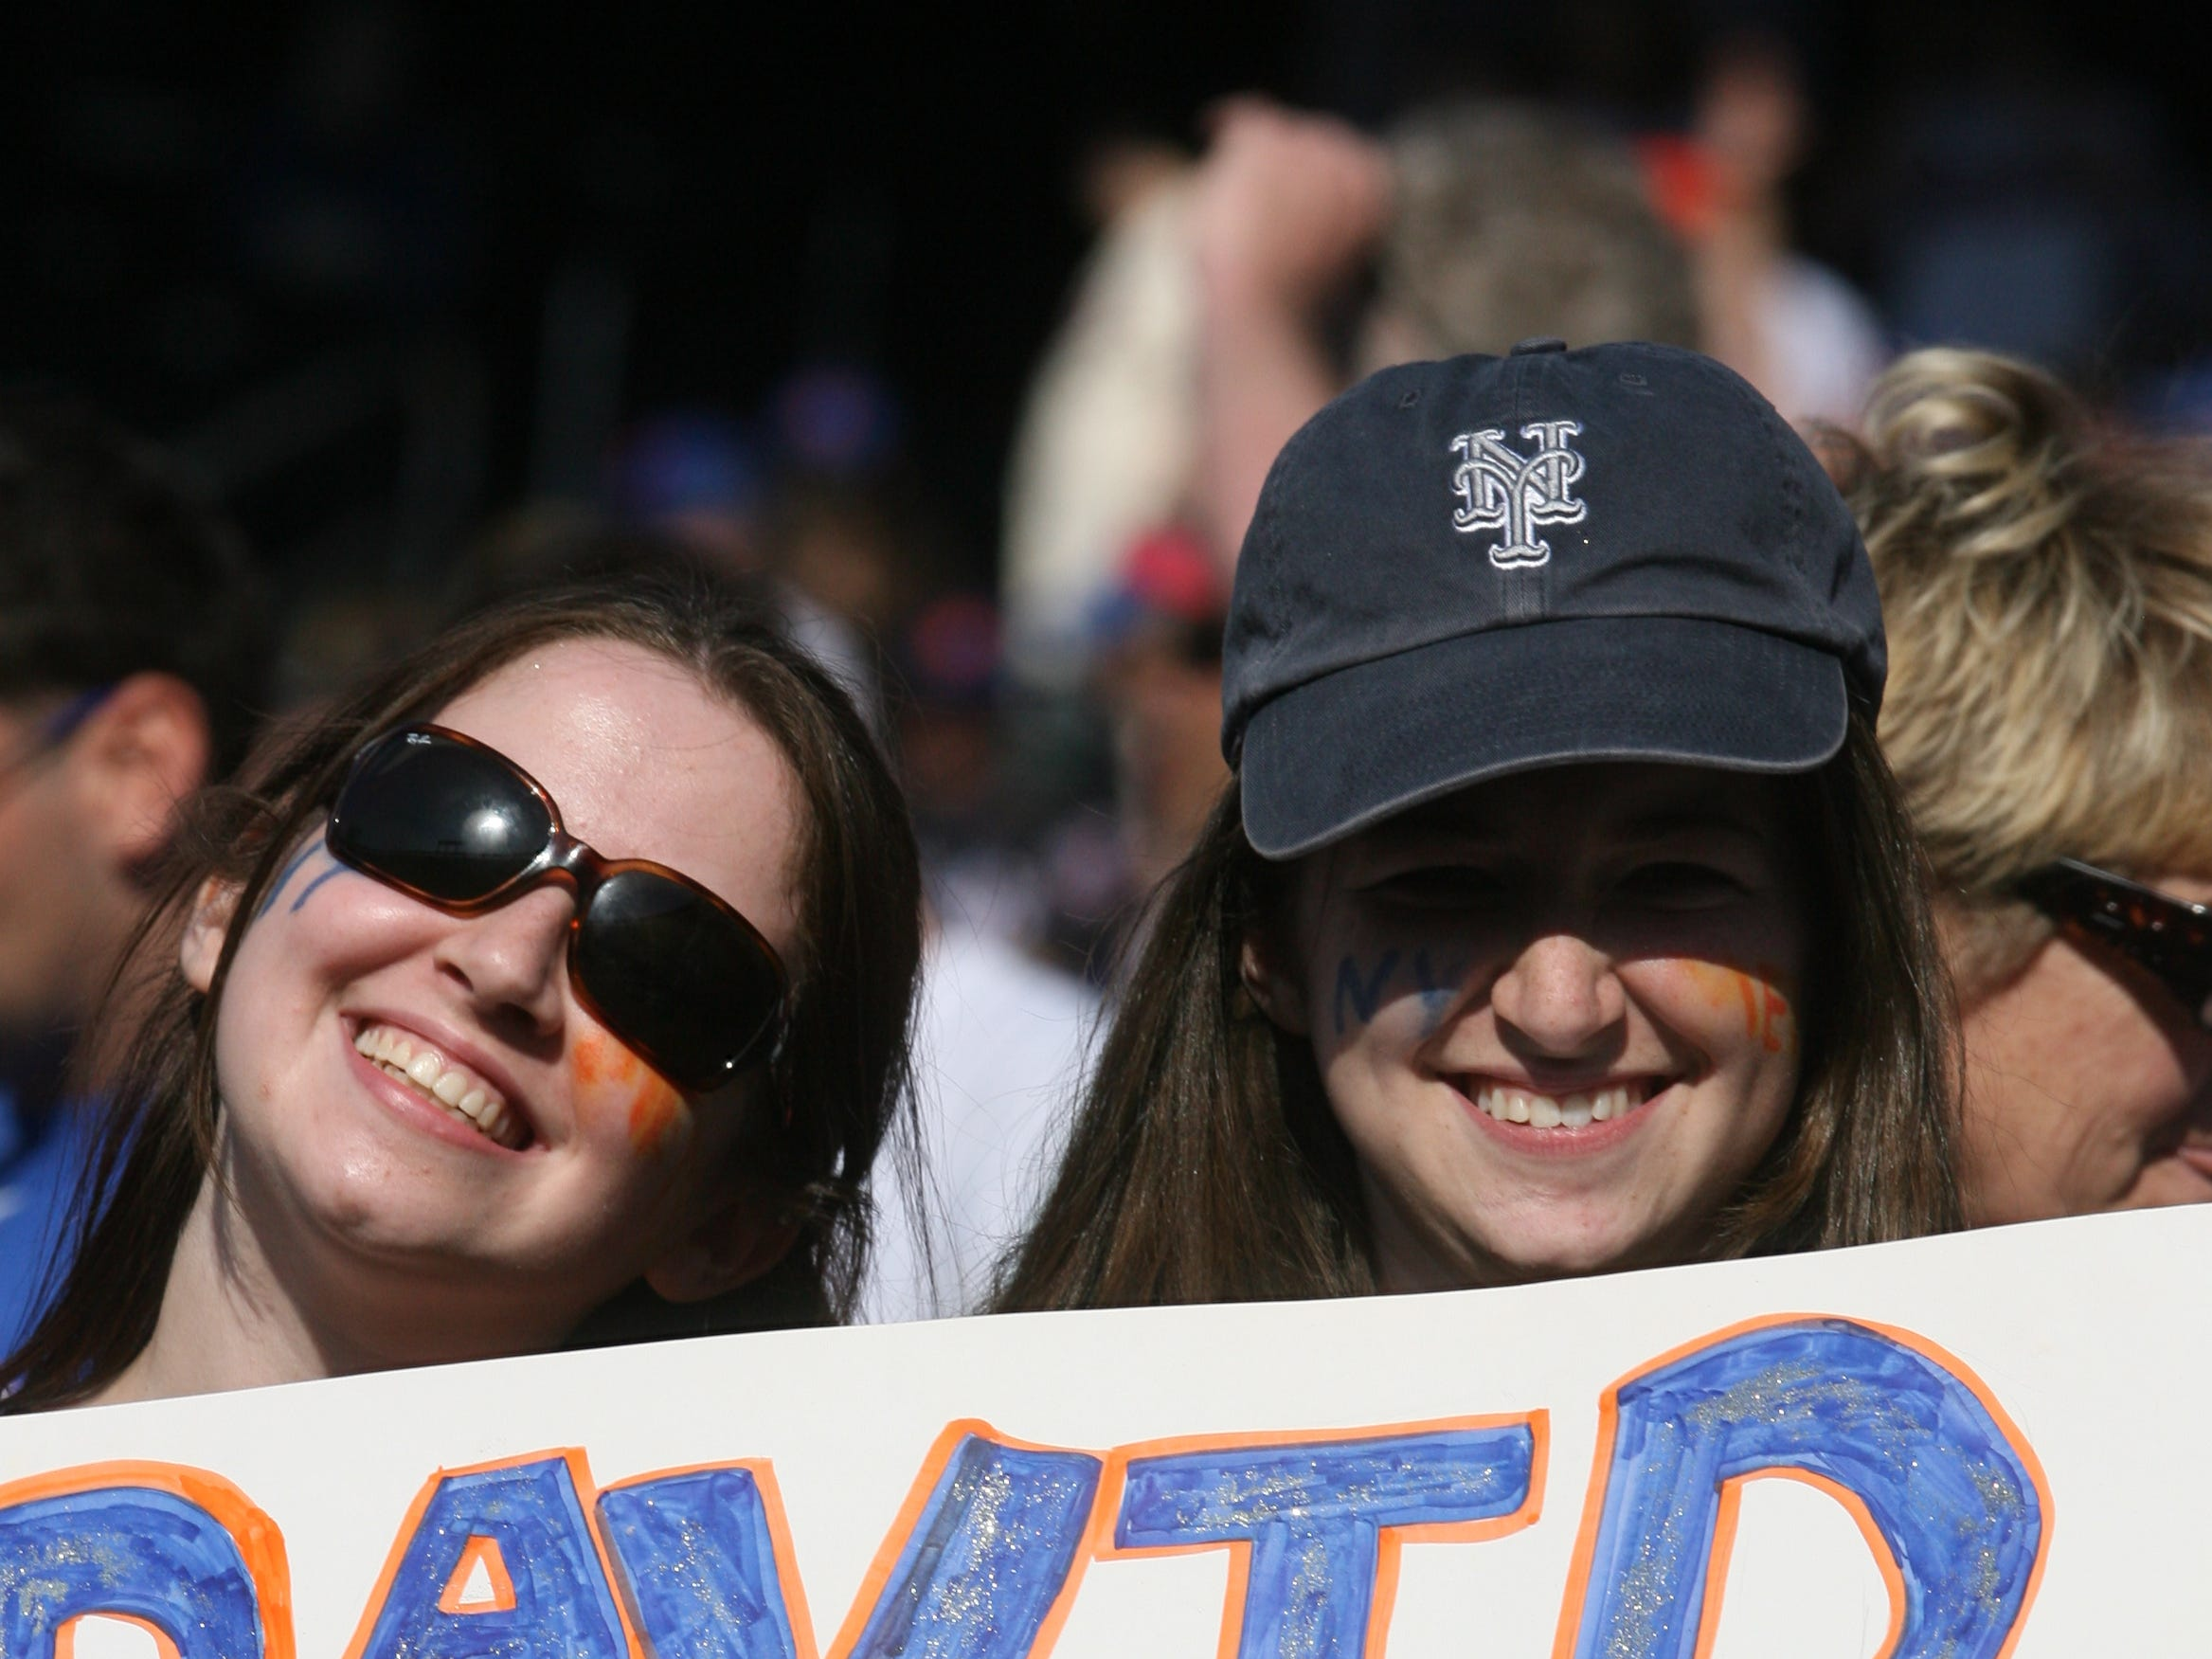 Opening Day 2010: Mets fans show their love for David Wright.